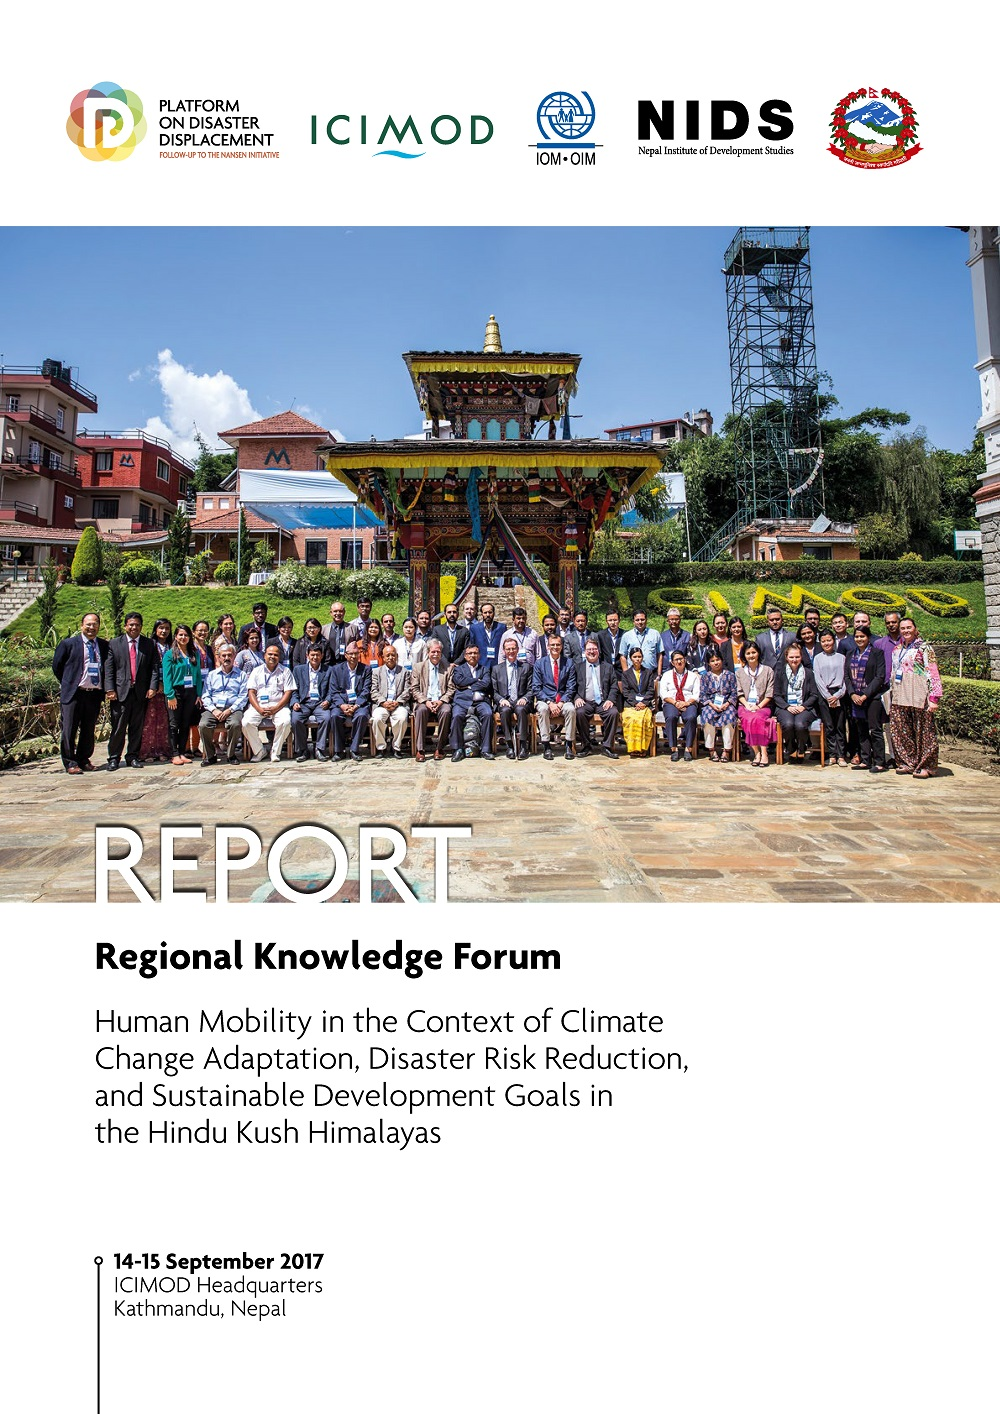 Report – Regional Knowledge Forum On Human Mobility In The Context Of Climate Change Adaptation, Disaster Risk Reduction, And Sustainable Development Goals In The Hindu Kush Himalayas